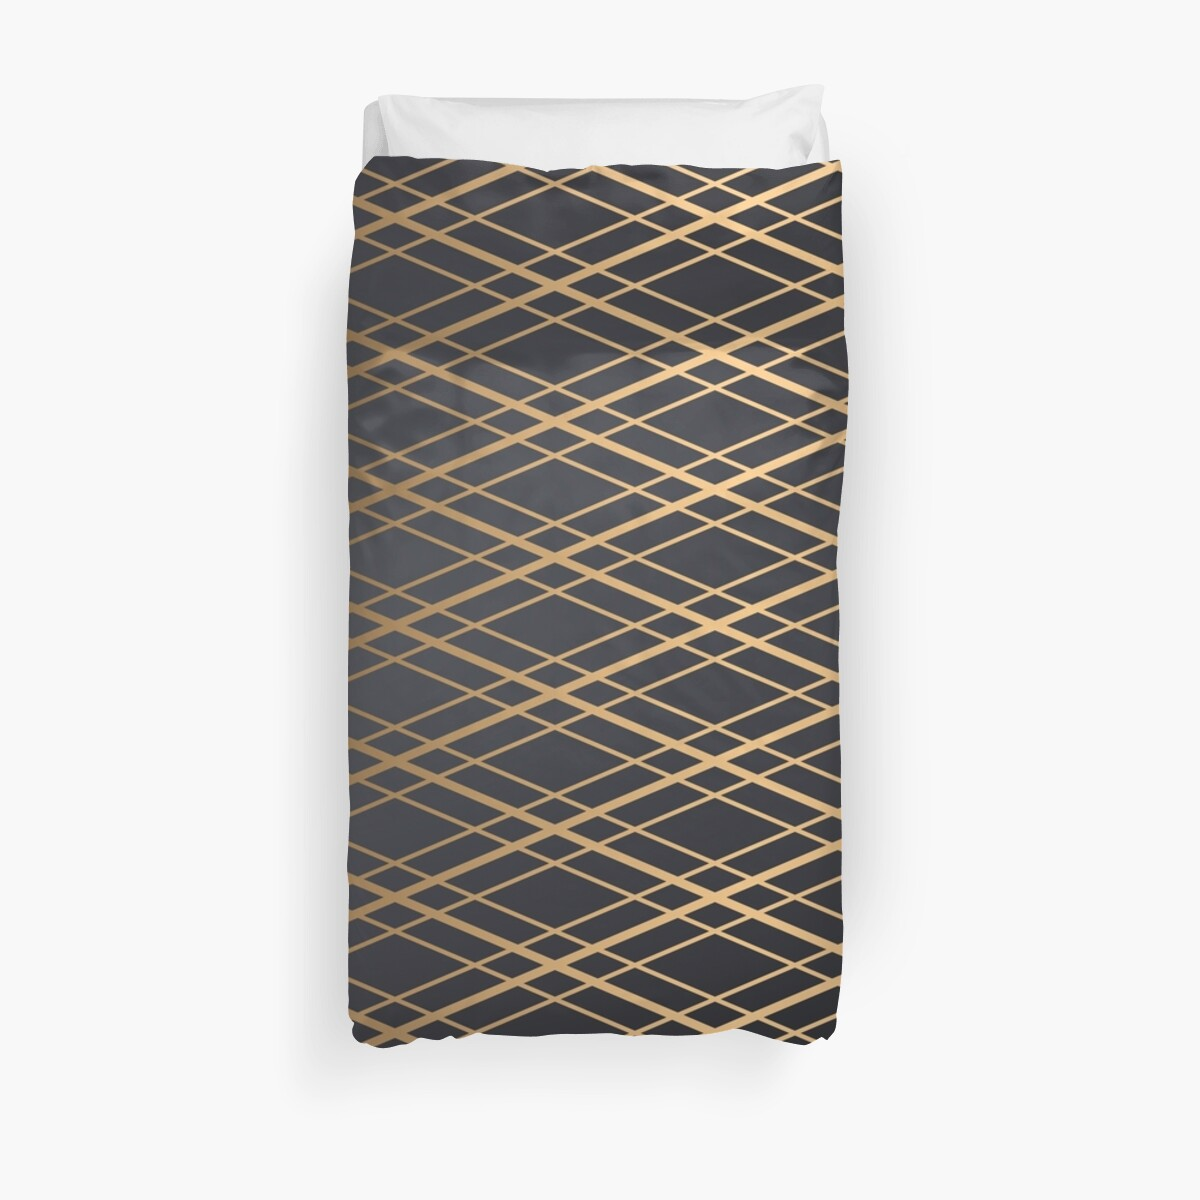 Duvet Cover Geometric Pin Striped Quilt Pattern by CreatedProto